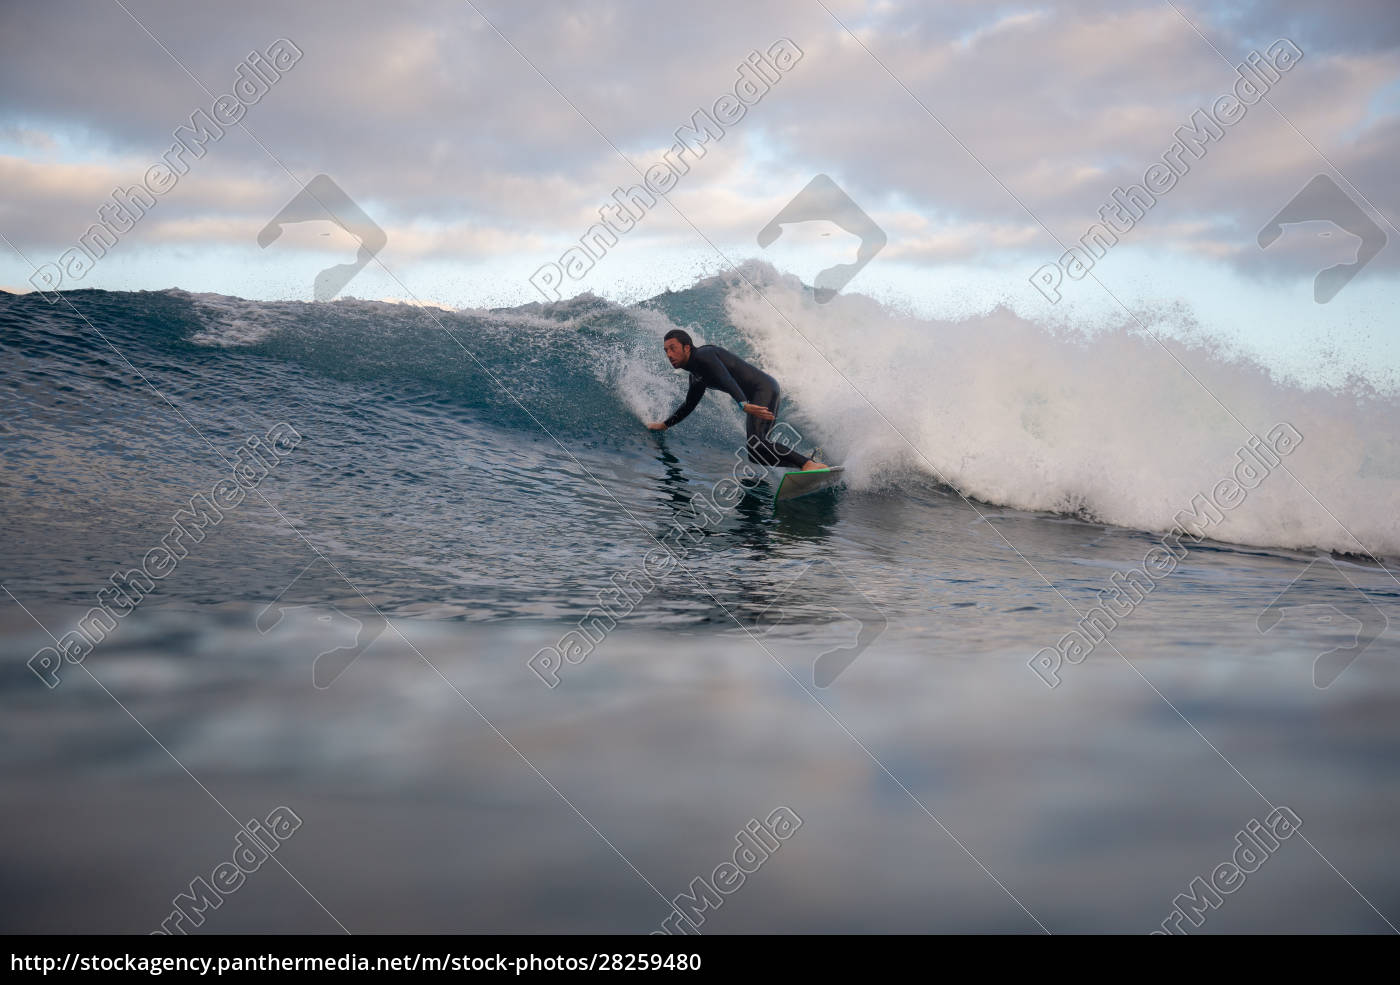 surfer, riding, waves, on, the, island - 28259480